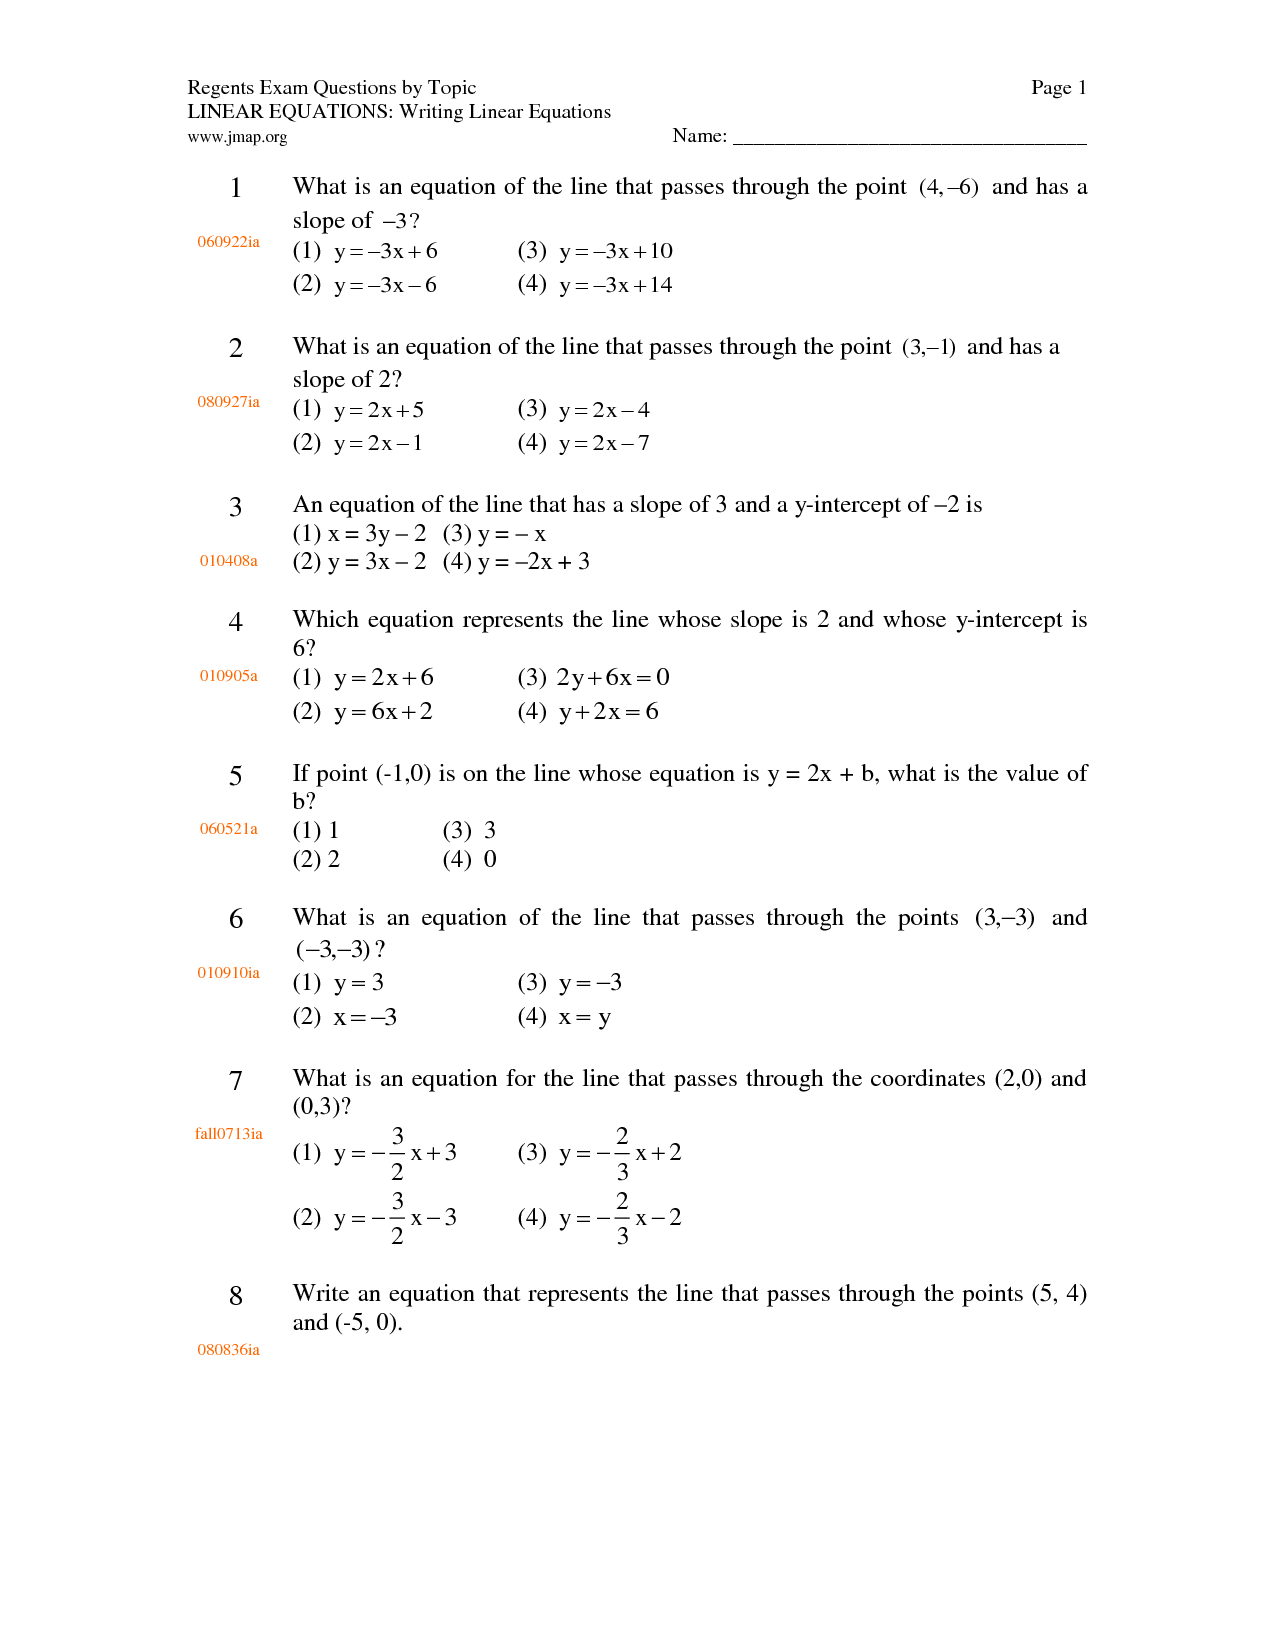 Worksheet Level 2 Writing Linear Equations